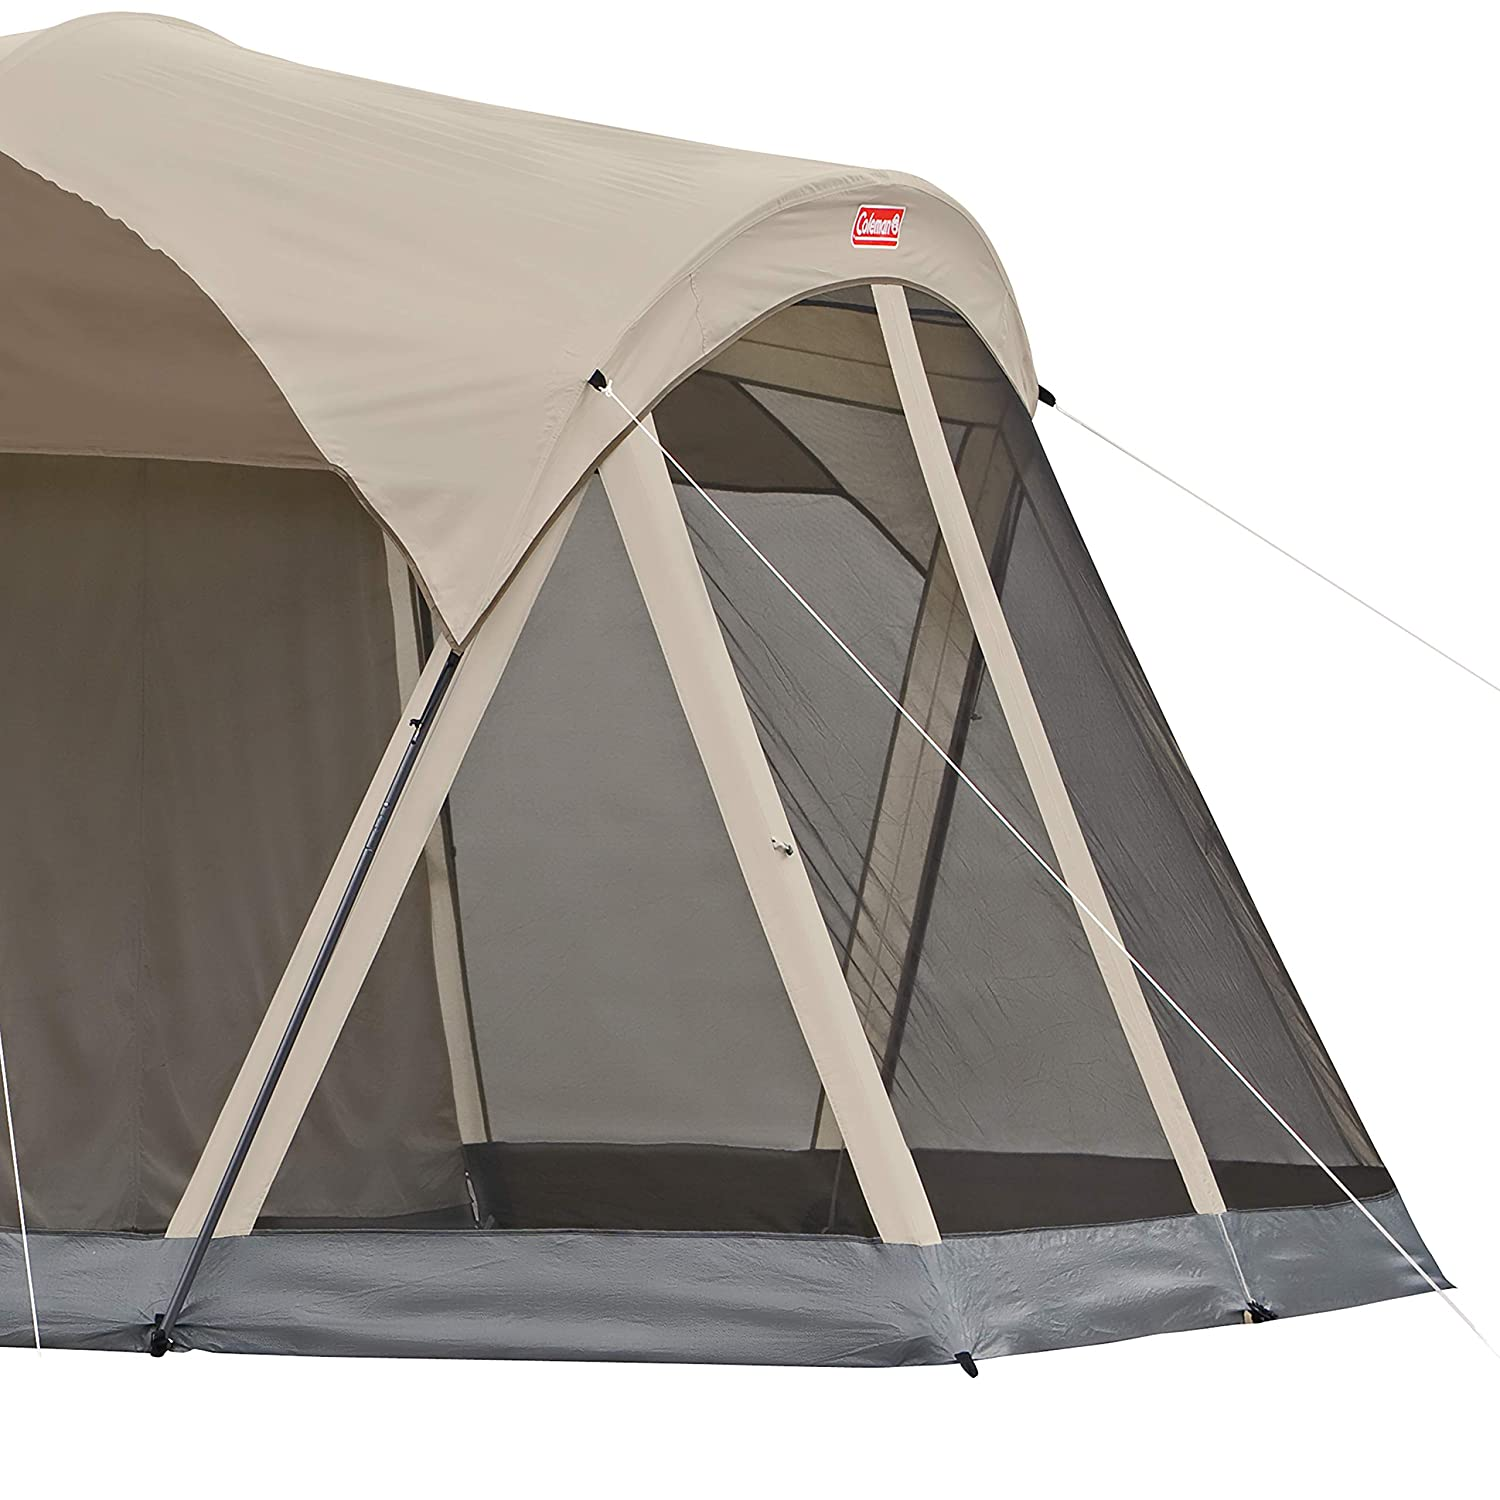 4f3d3bf1c6c Amazon.com : Coleman WeatherMaster 6-Person Tent with Screen Room : Sports  & Outdoors